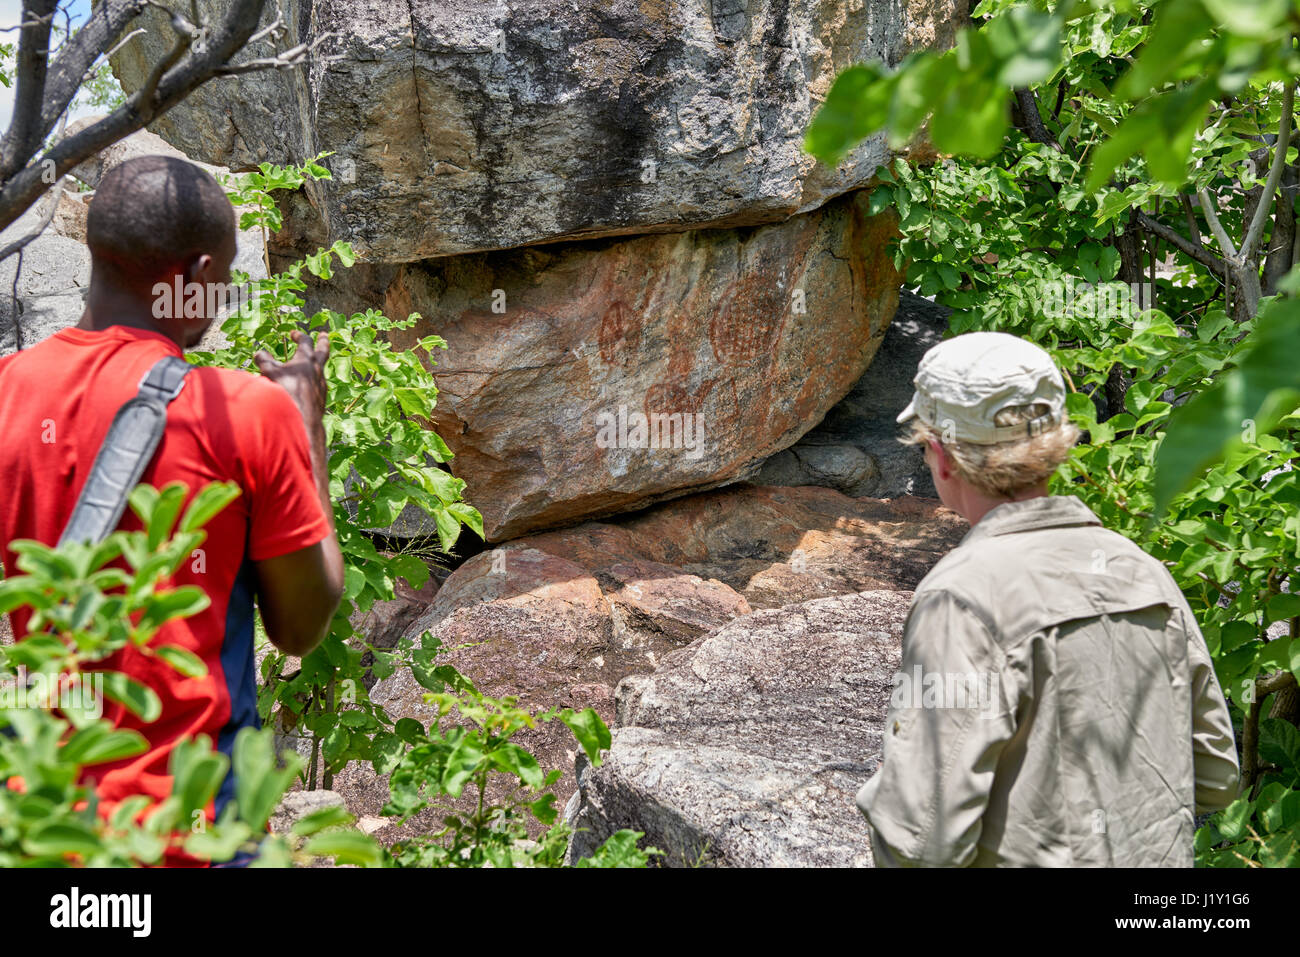 tourist and guide looking on Rock art, ancient San paintings, Tsodilo Hills, Botswana, Africa Stock Photo